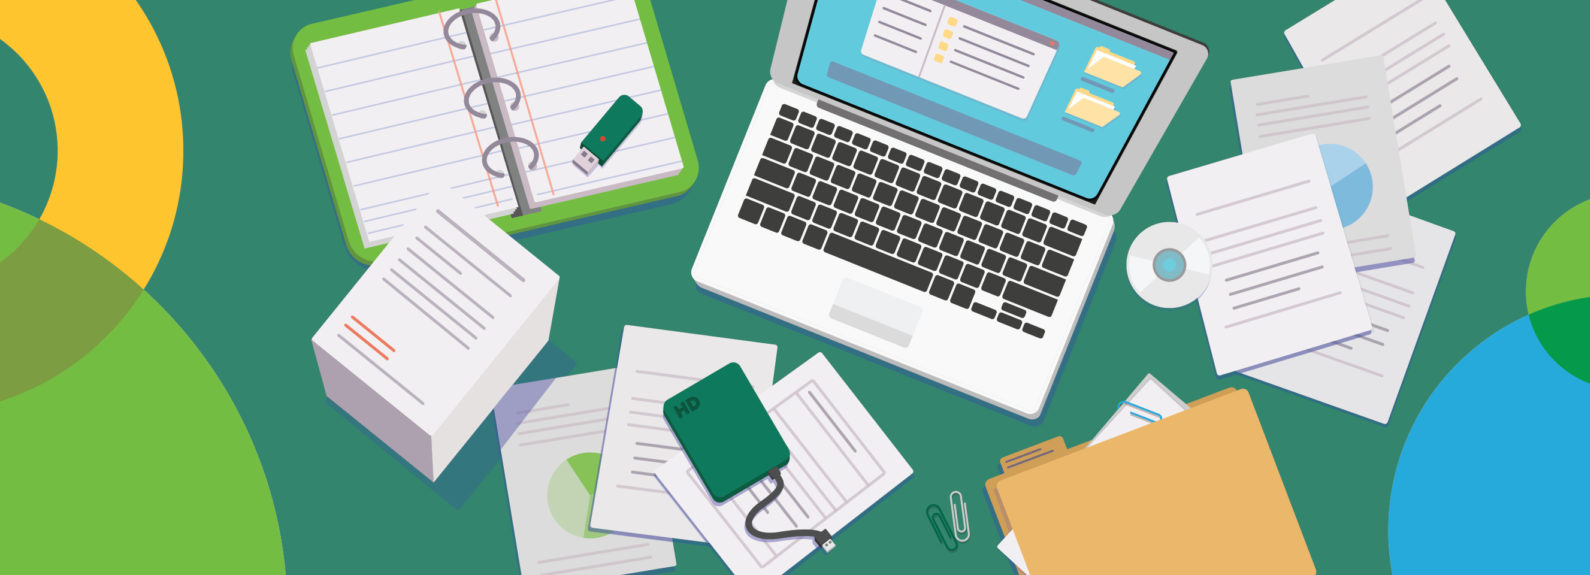 Social media financial documents what to keep and what to toss hero